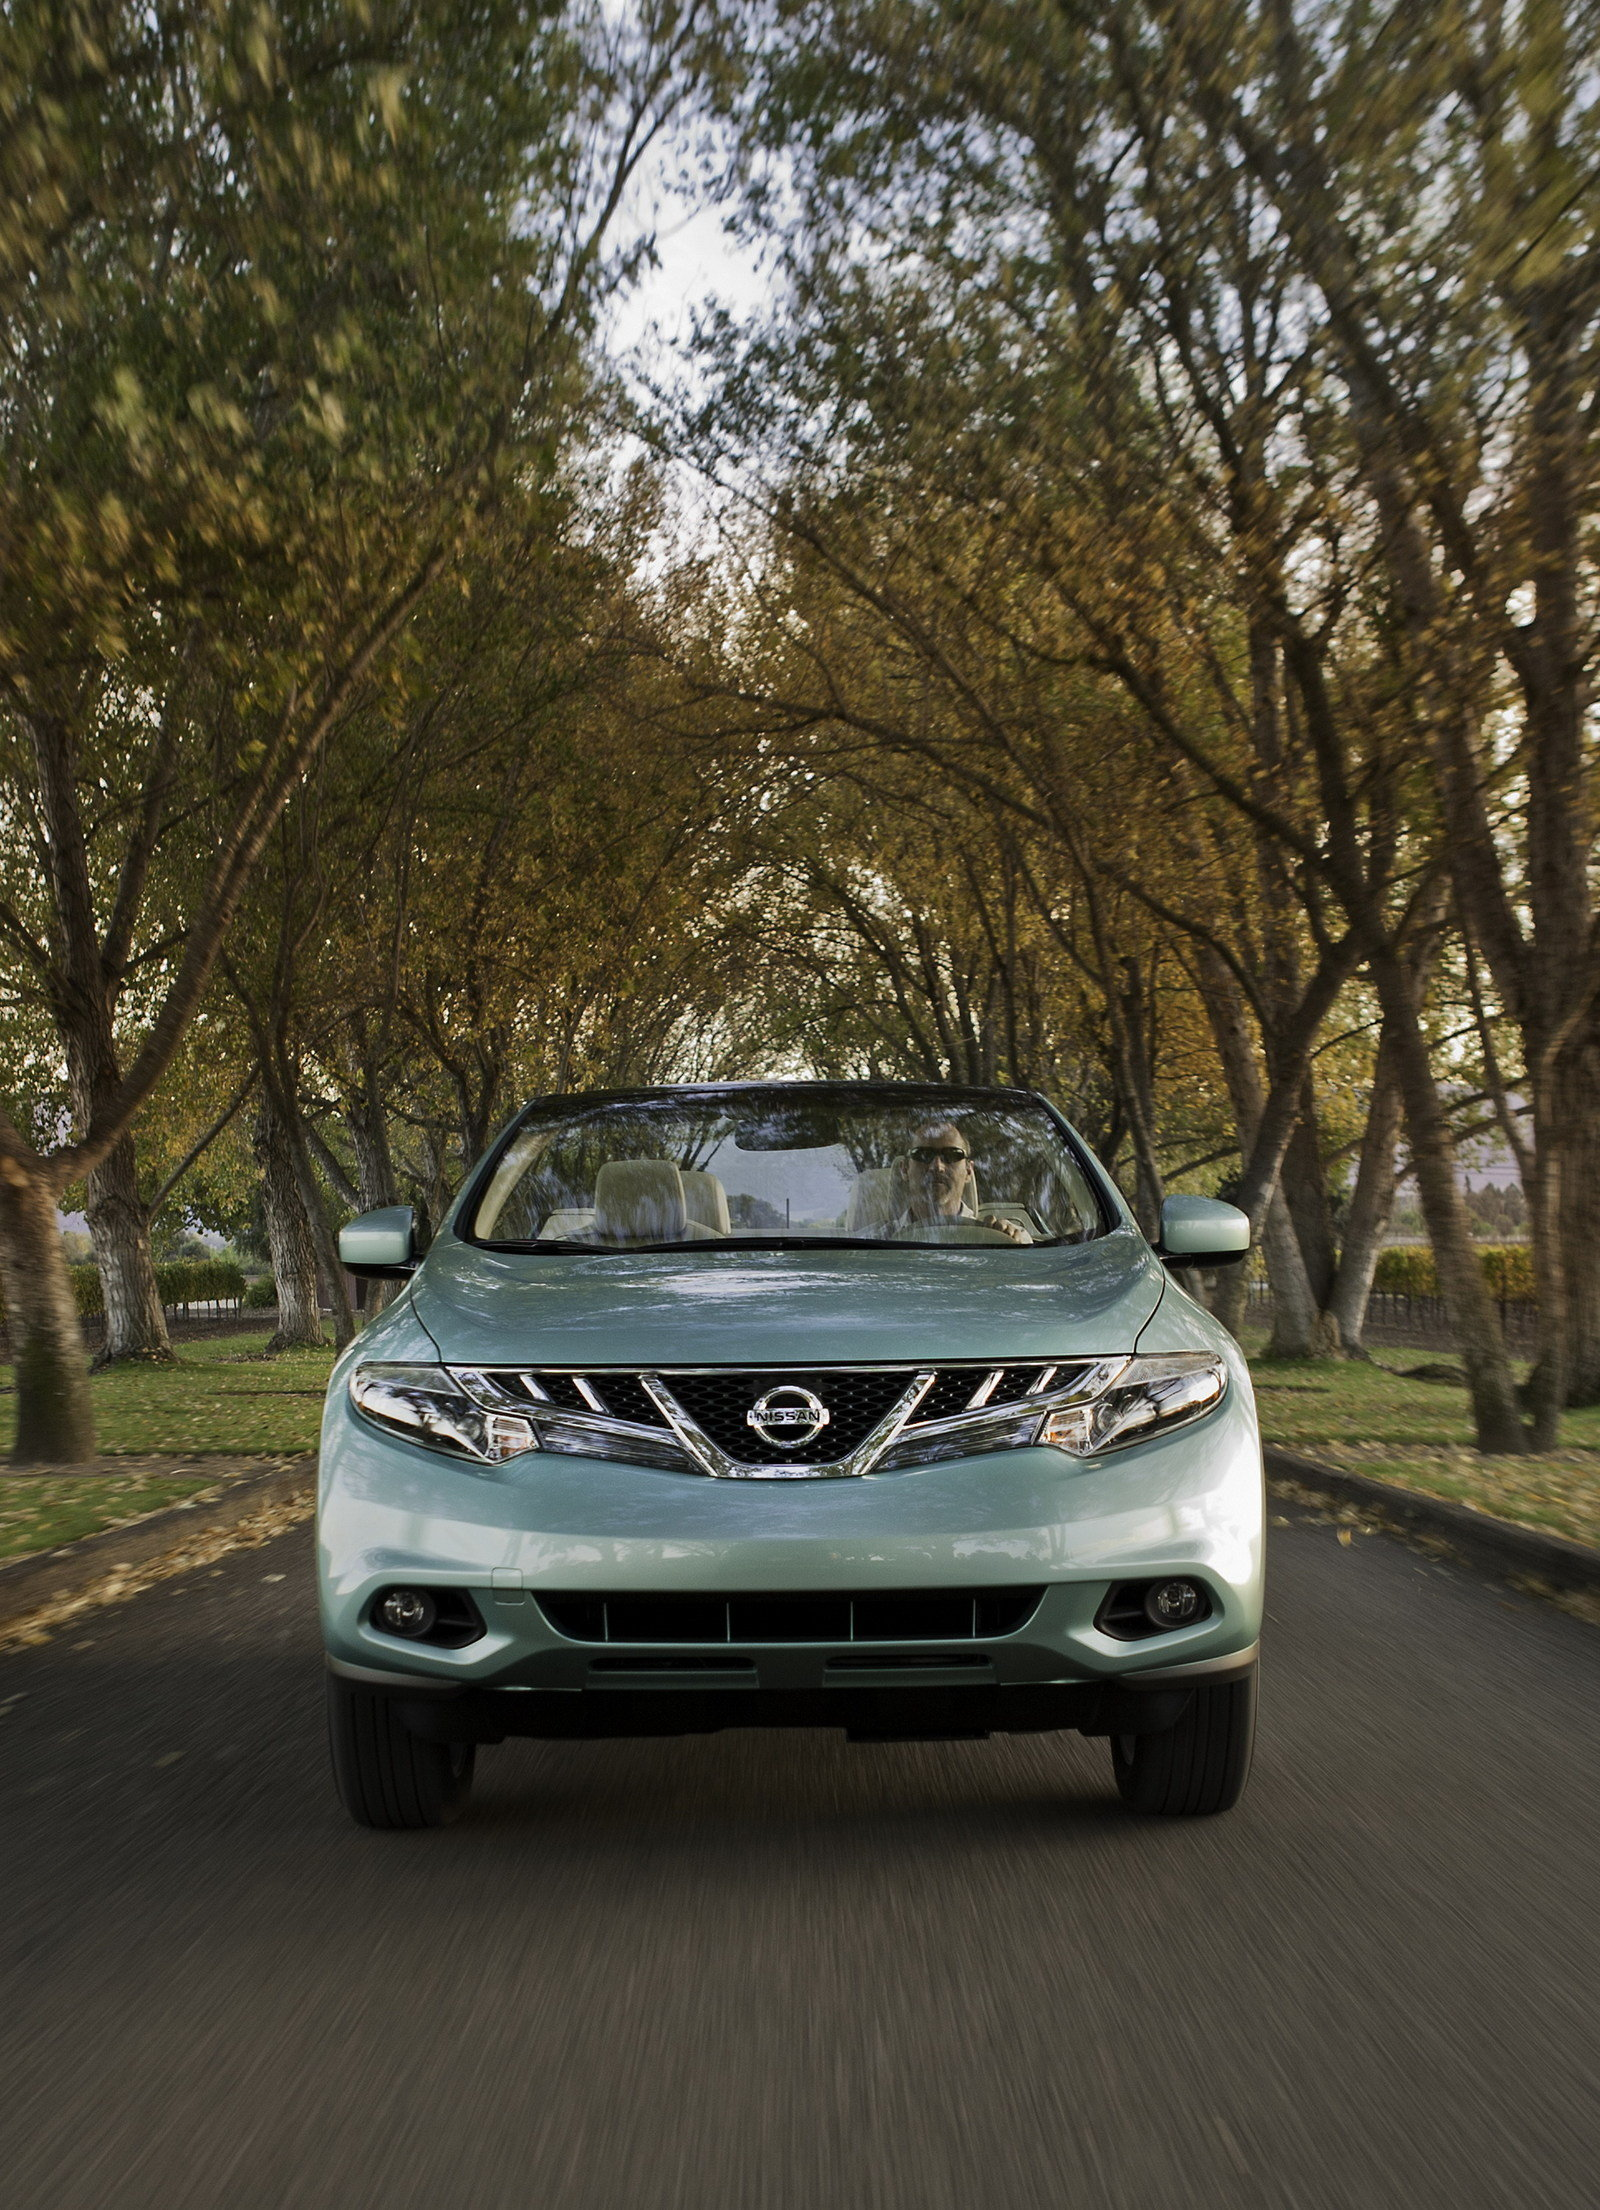 2014 nissan murano crosscabriolet picture 540079 car review top speed. Black Bedroom Furniture Sets. Home Design Ideas